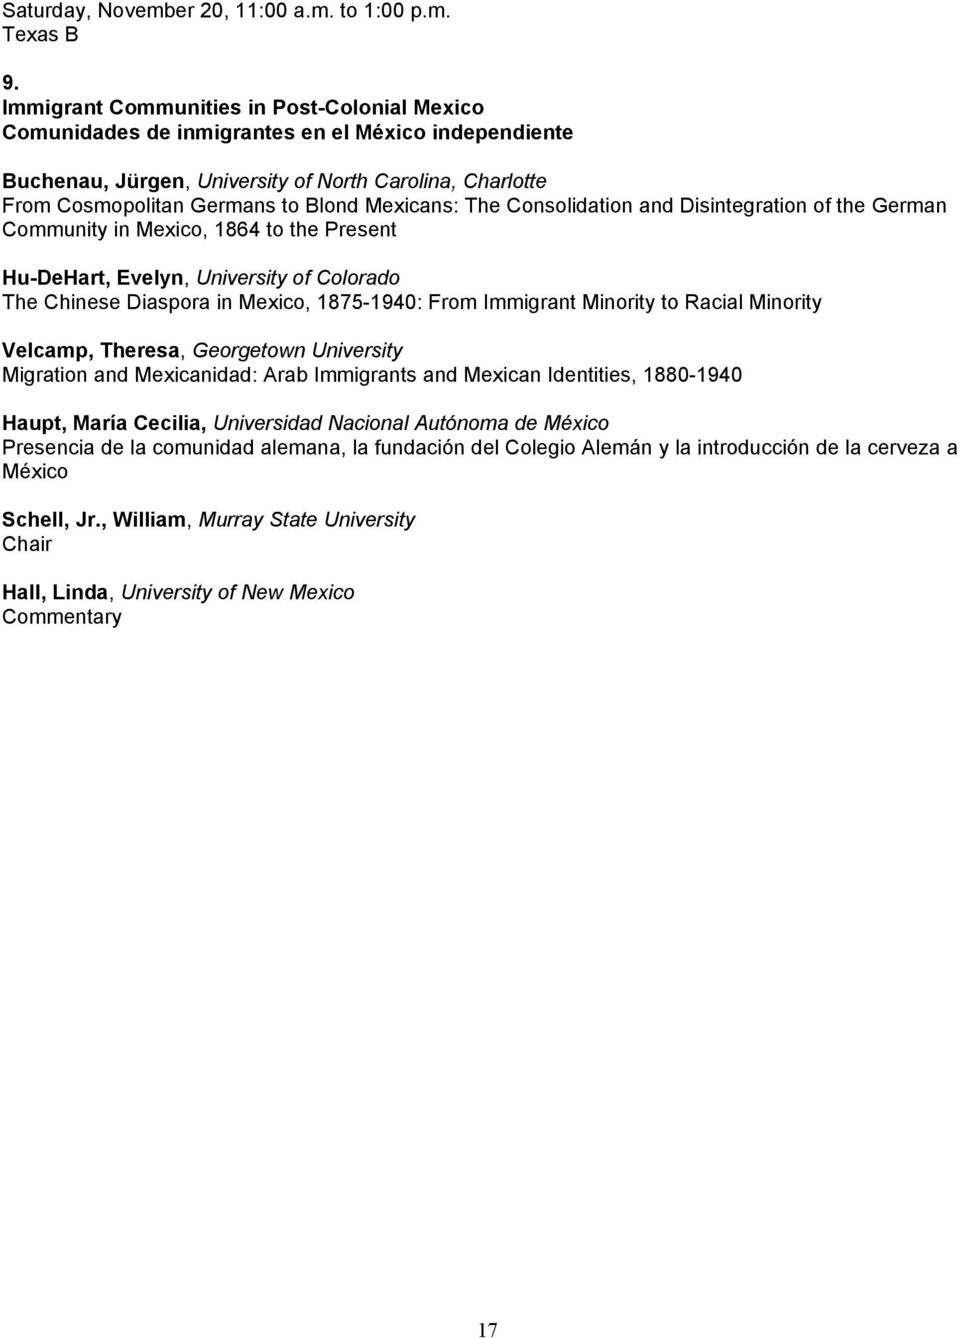 Mexicans: The Consolidation and Disintegration of the German Community in Mexico, 1864 to the Present Hu-DeHart, Evelyn, University of Colorado The Chinese Diaspora in Mexico, 1875-1940: From